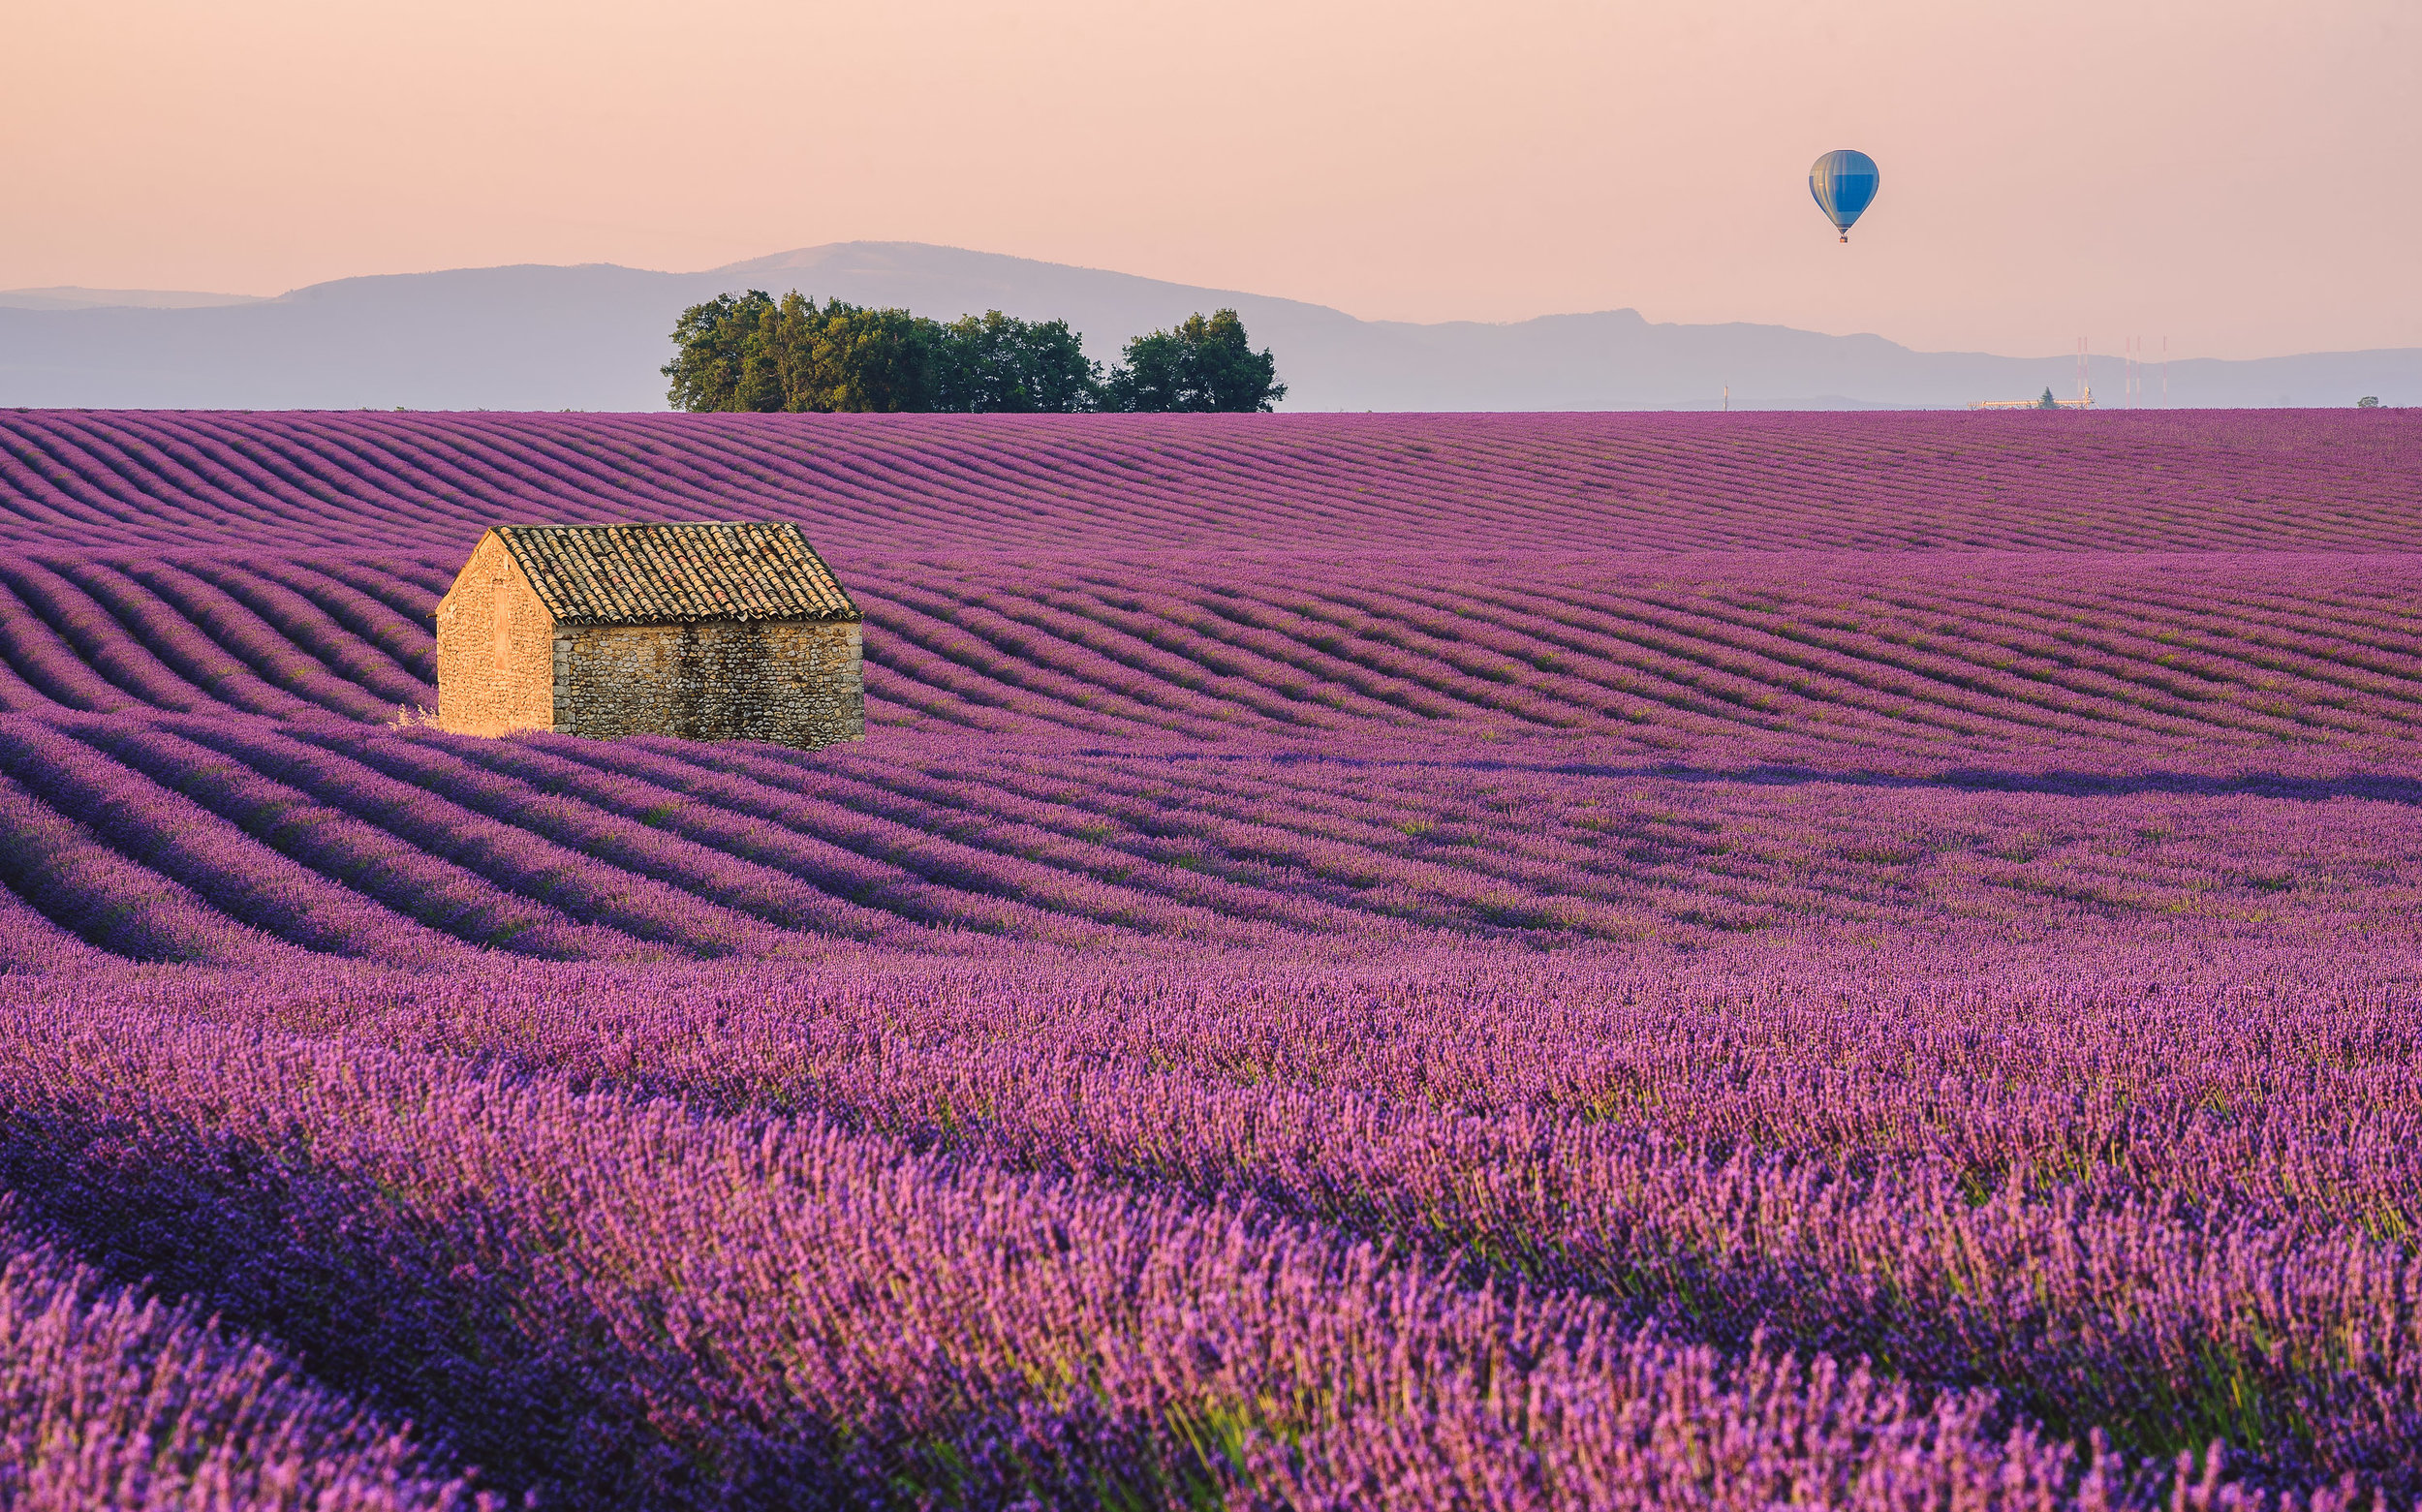 Day 1 - Meetup in Nice Airport at 13:00. We will then drive to the hotel in Provence where we will spend the next days. We will start our adventure with a sunset photography session at the Valensole plateau to enjoy right away the beauty of Provence.